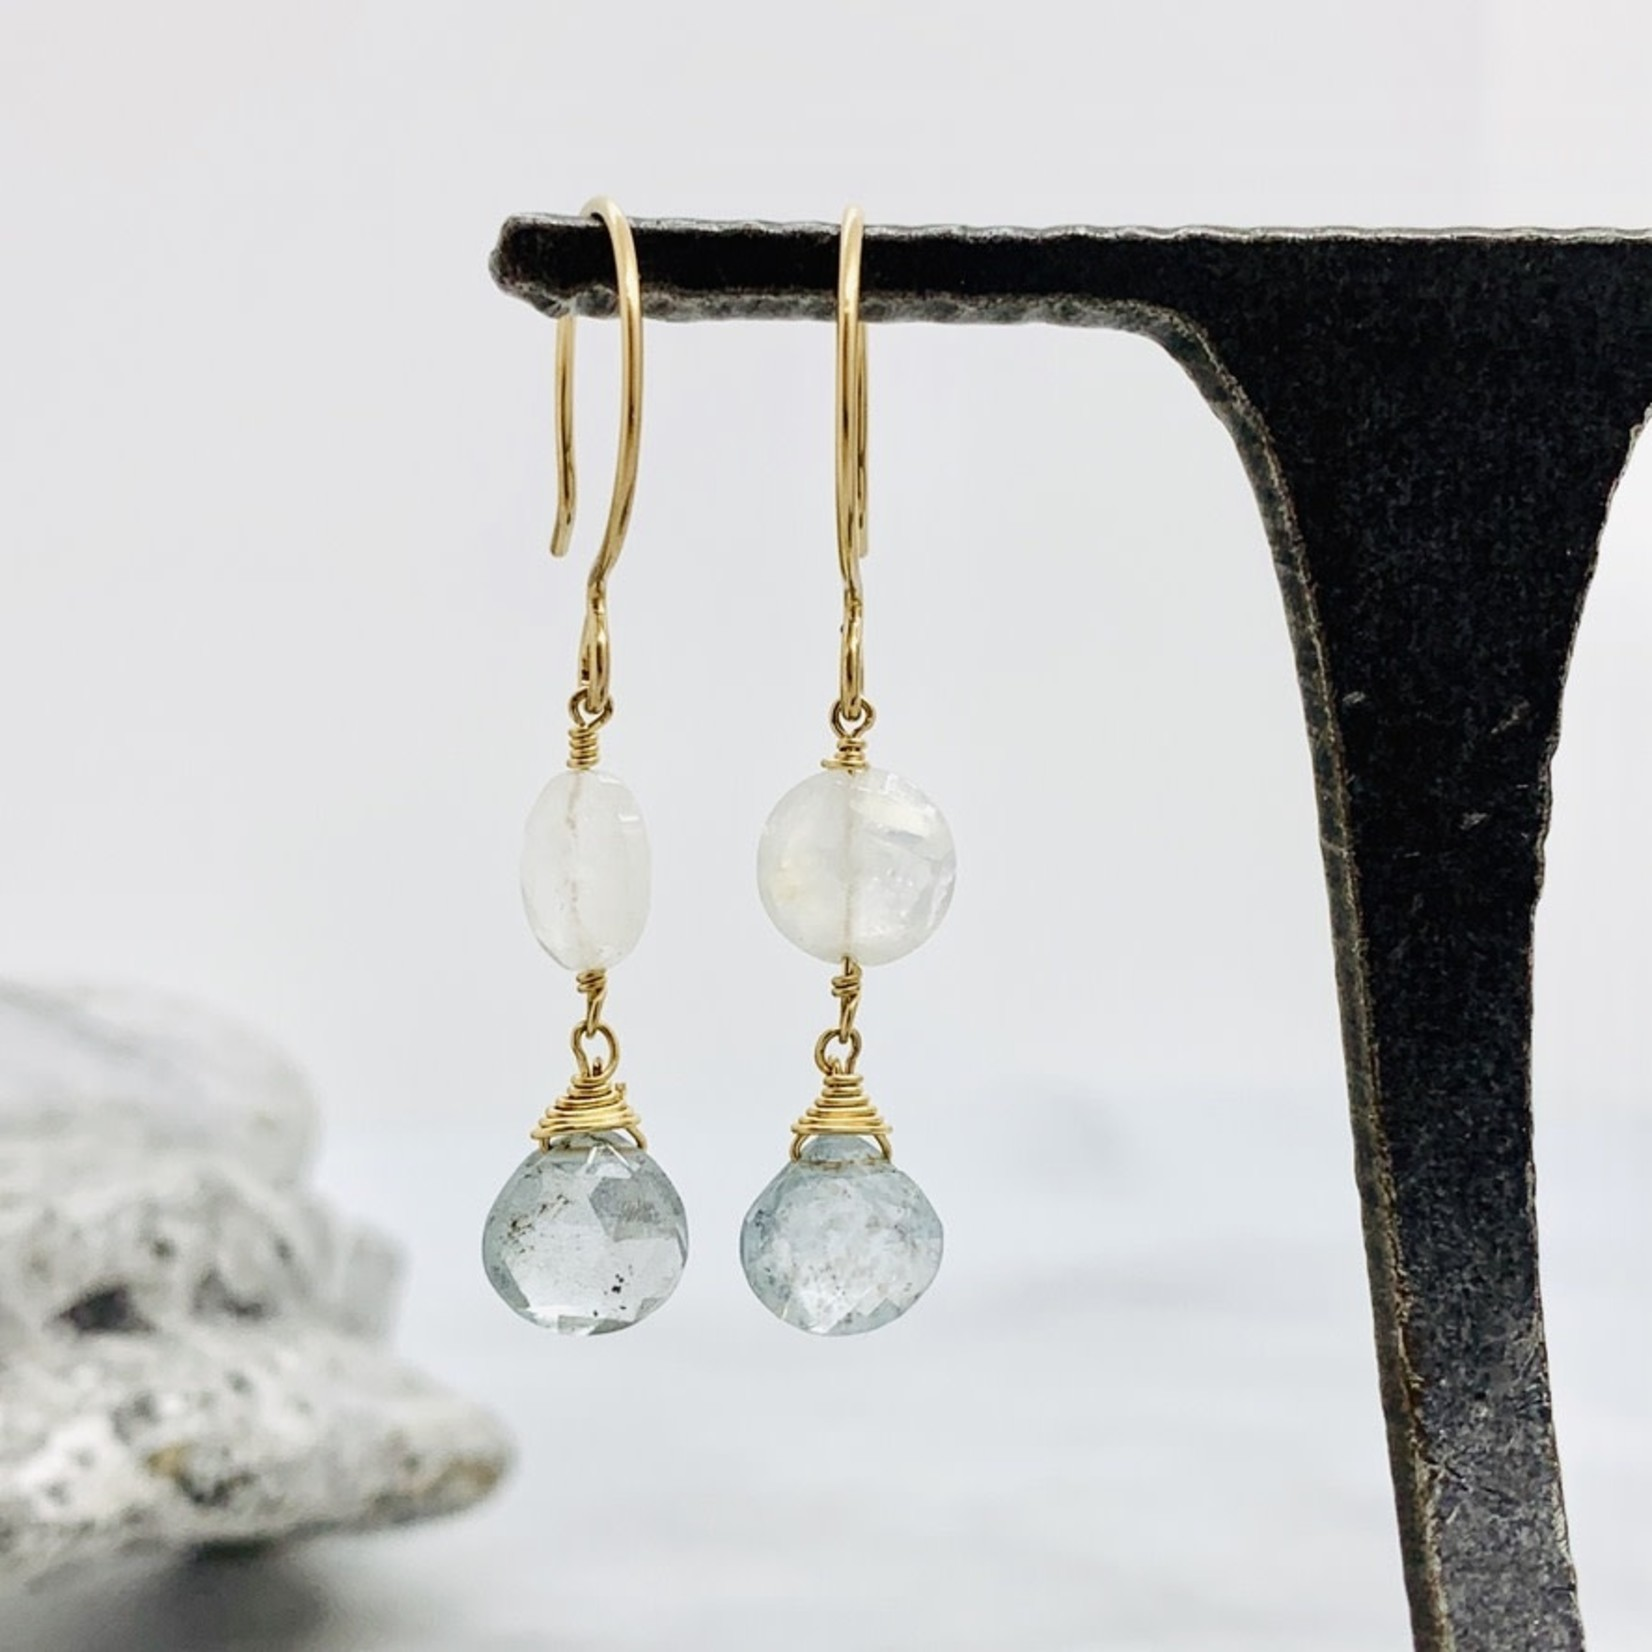 Handmade earrings with moonstone and moss aquamarine drops on GF wire